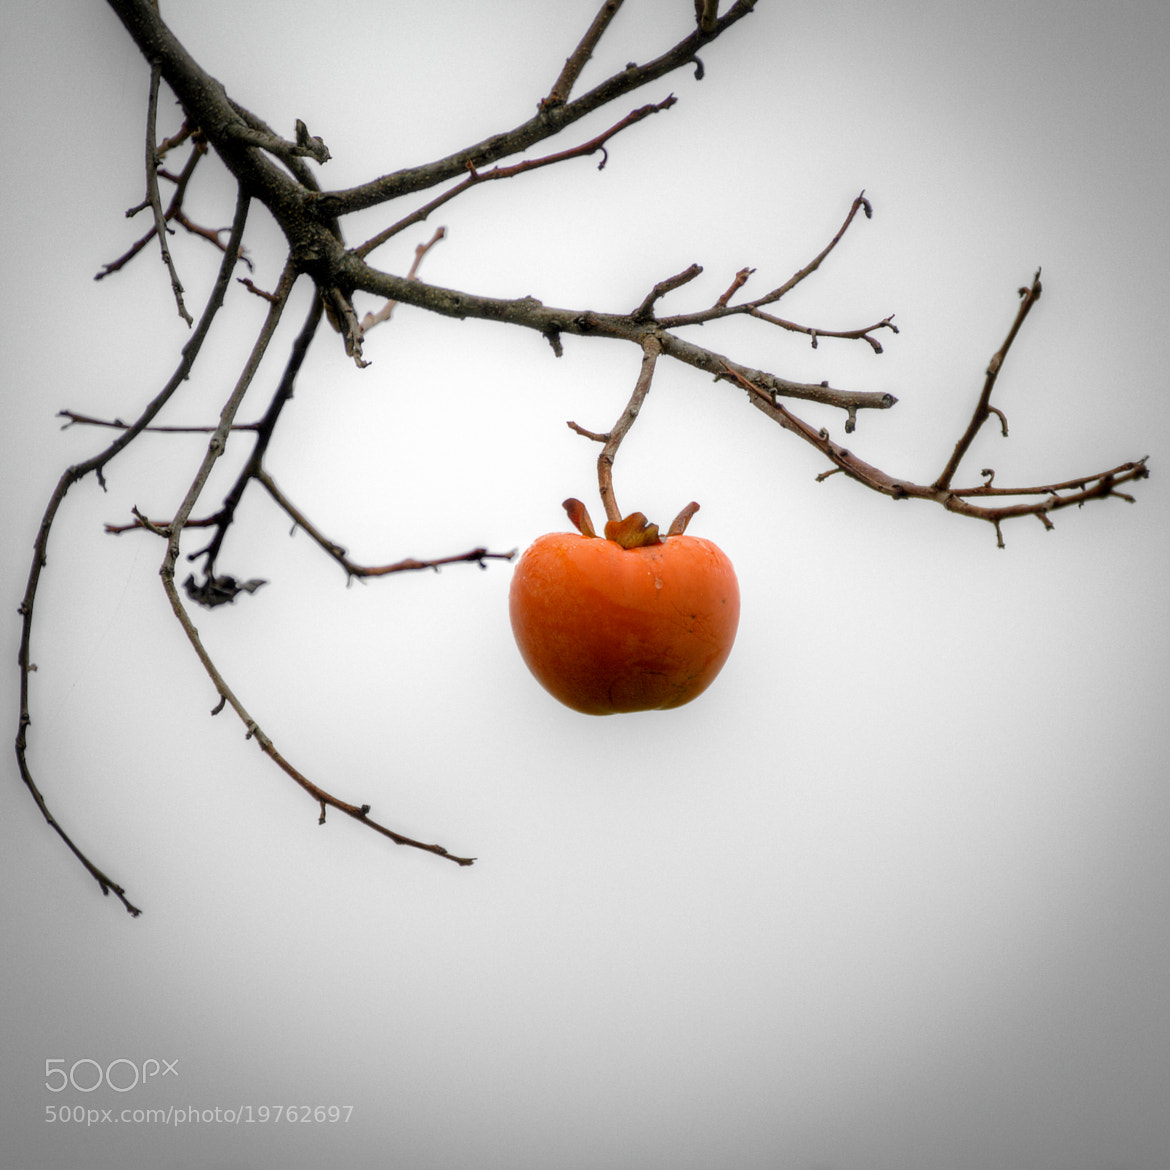 Photograph Japanese persimmon by Max G on 500px